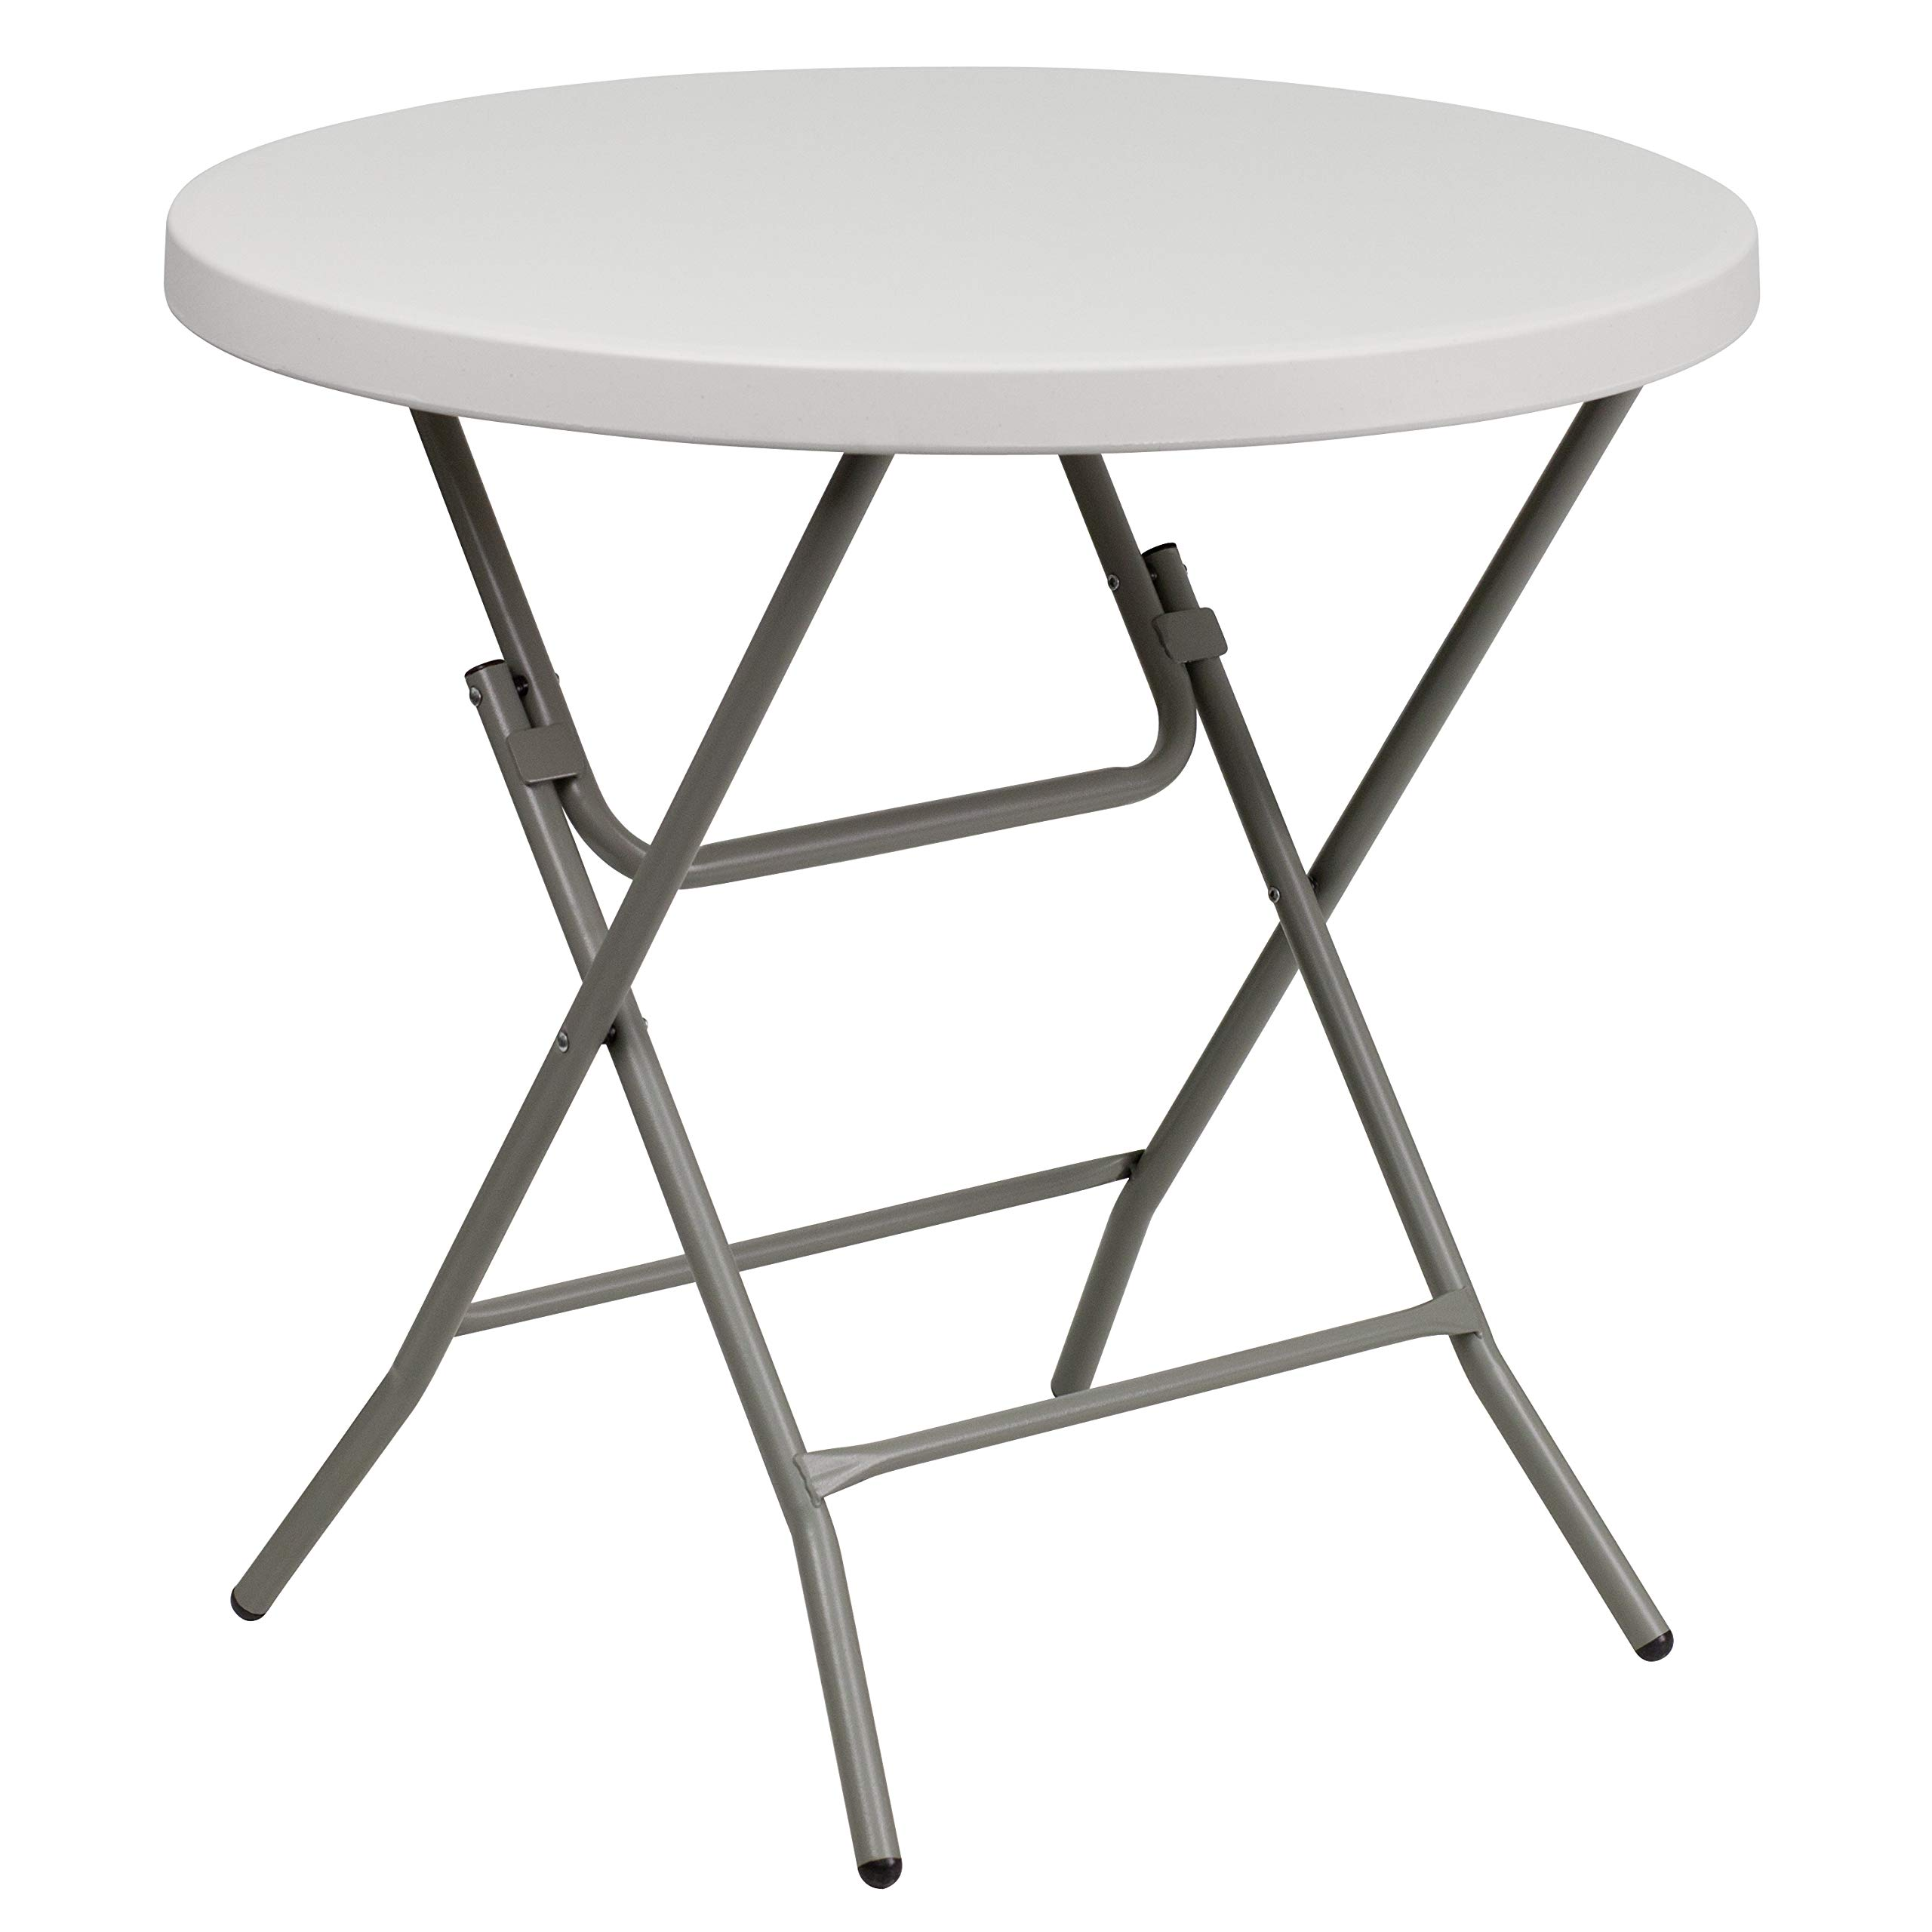 Flash Furniture 3-Foot Round Granite White Plastic Folding Table by Flash Furniture